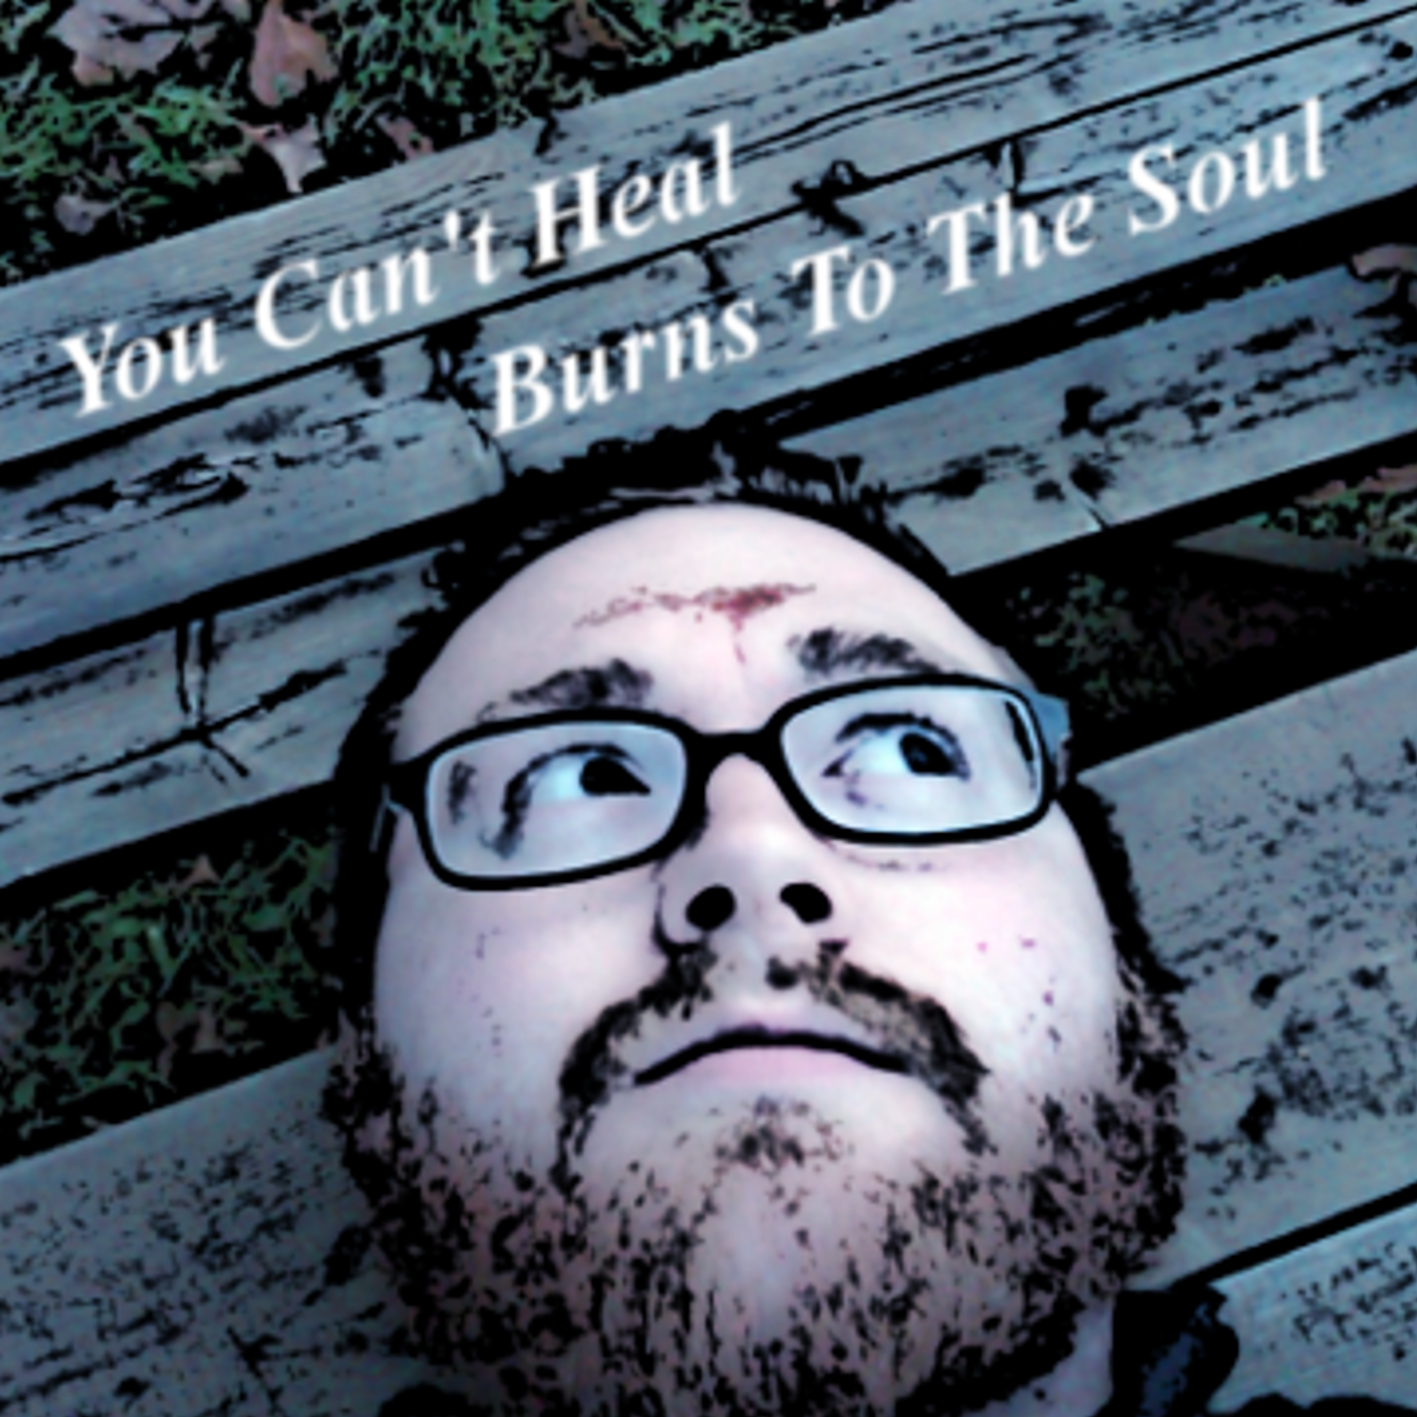 You_can_t_heal_burns_to_the_soul_front_cover_original